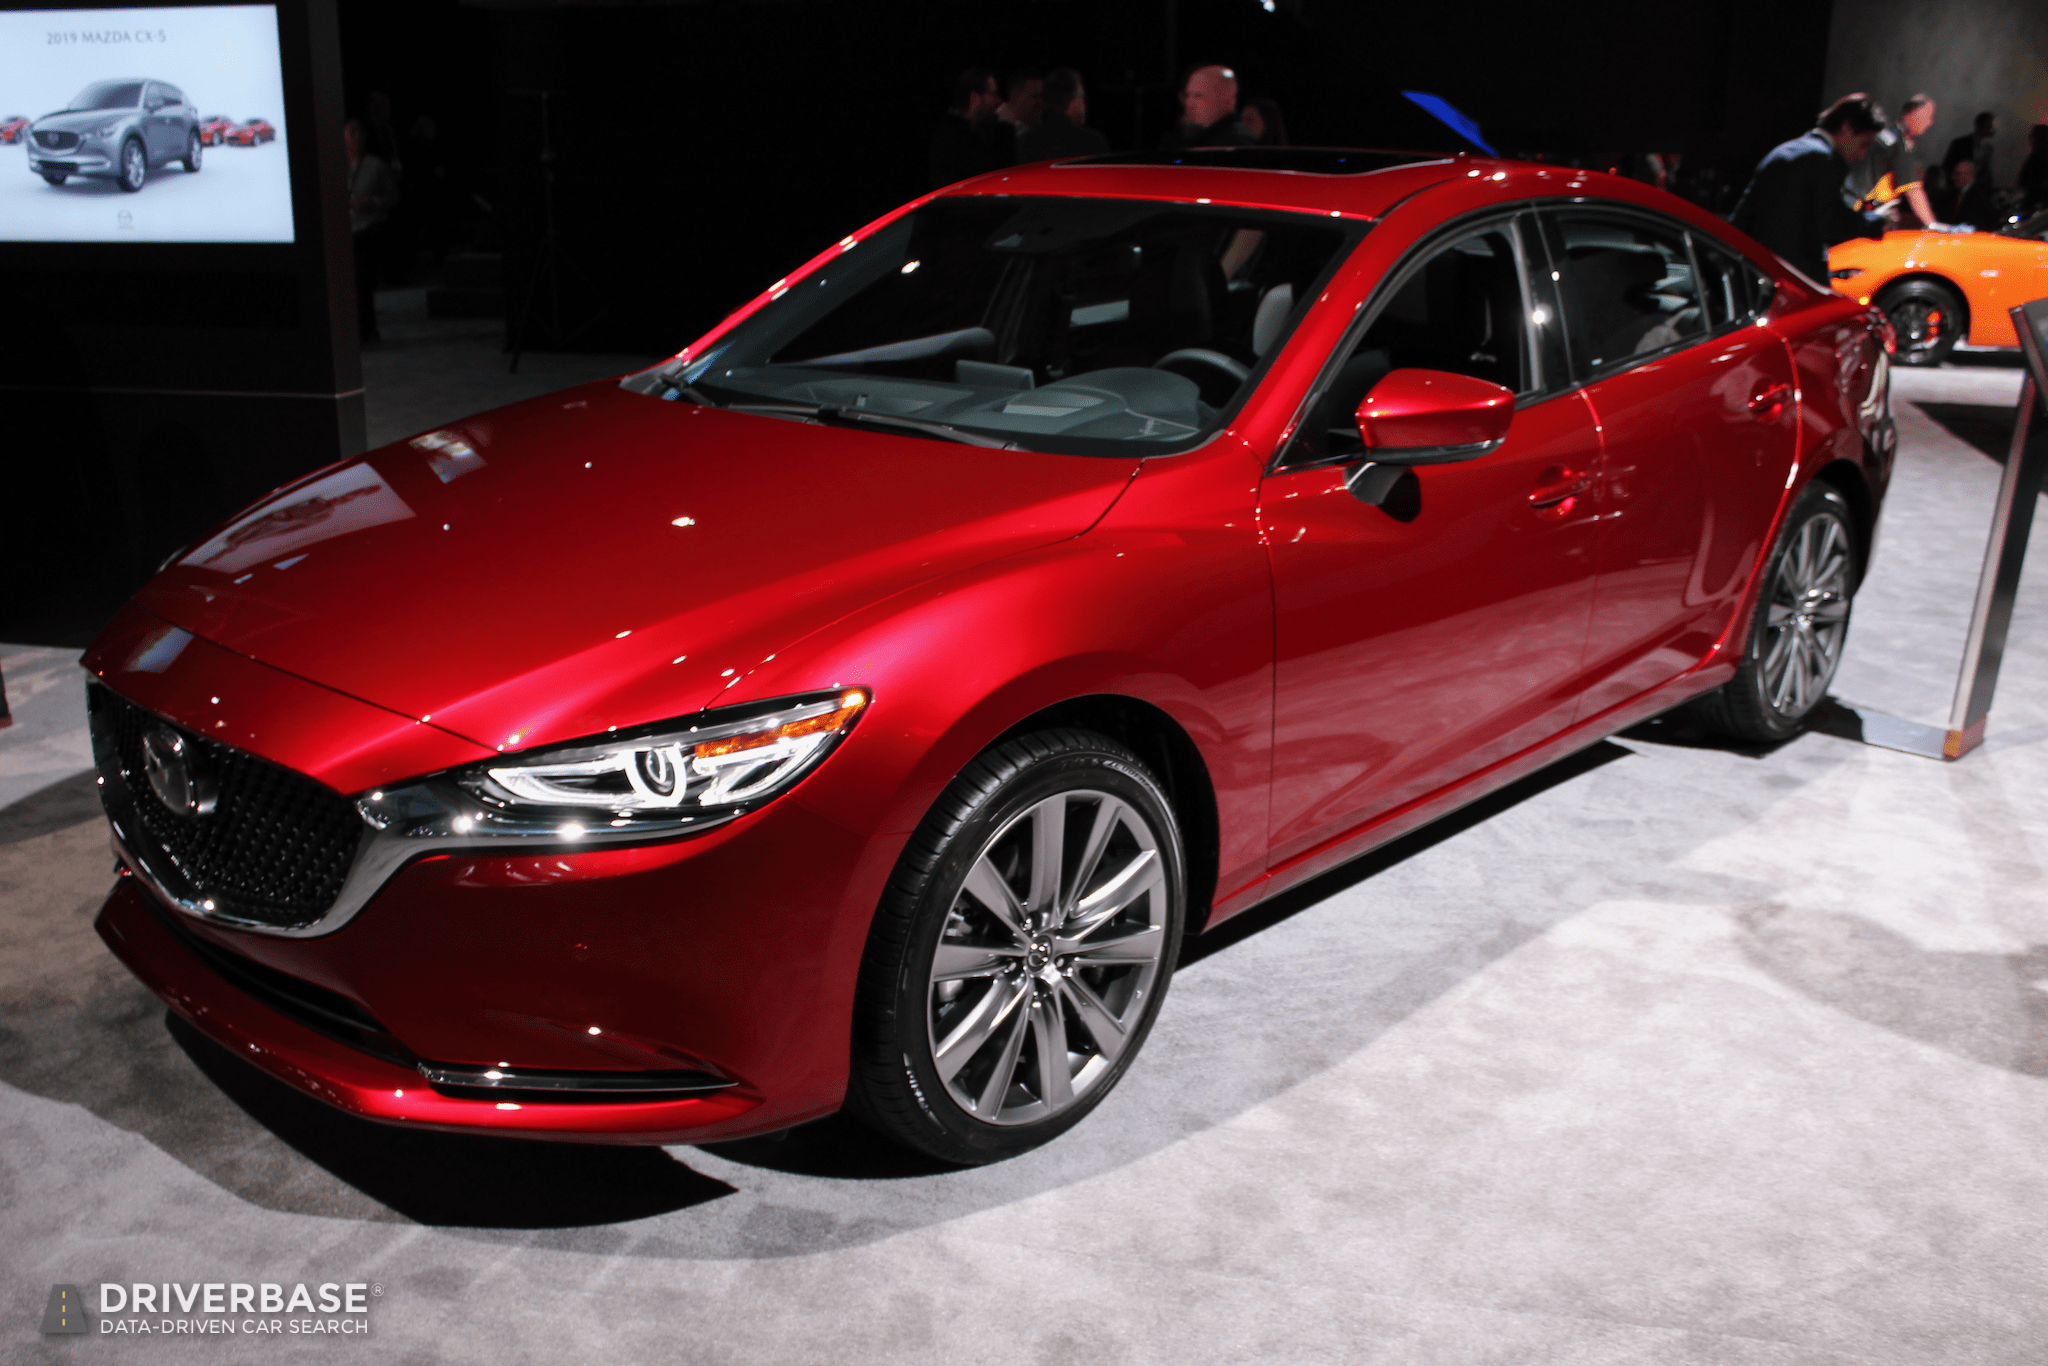 Used Car Dealer >> 2020 Mazda 6 at the 2019 New York Auto Show – Driverbase